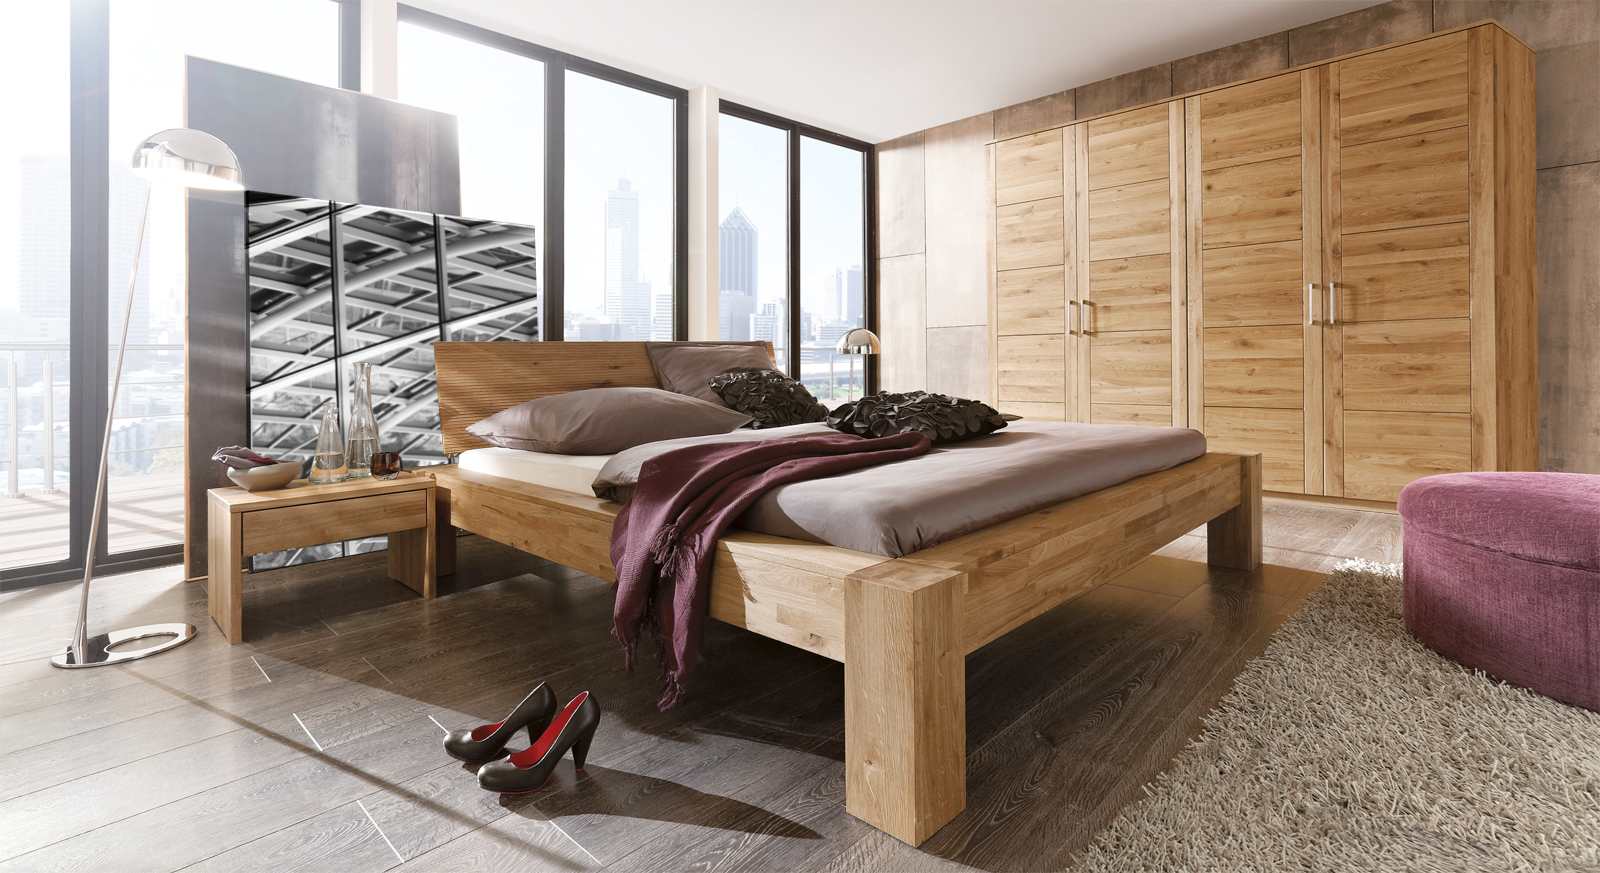 schlafzimmer aus holz haus design ideen. Black Bedroom Furniture Sets. Home Design Ideas